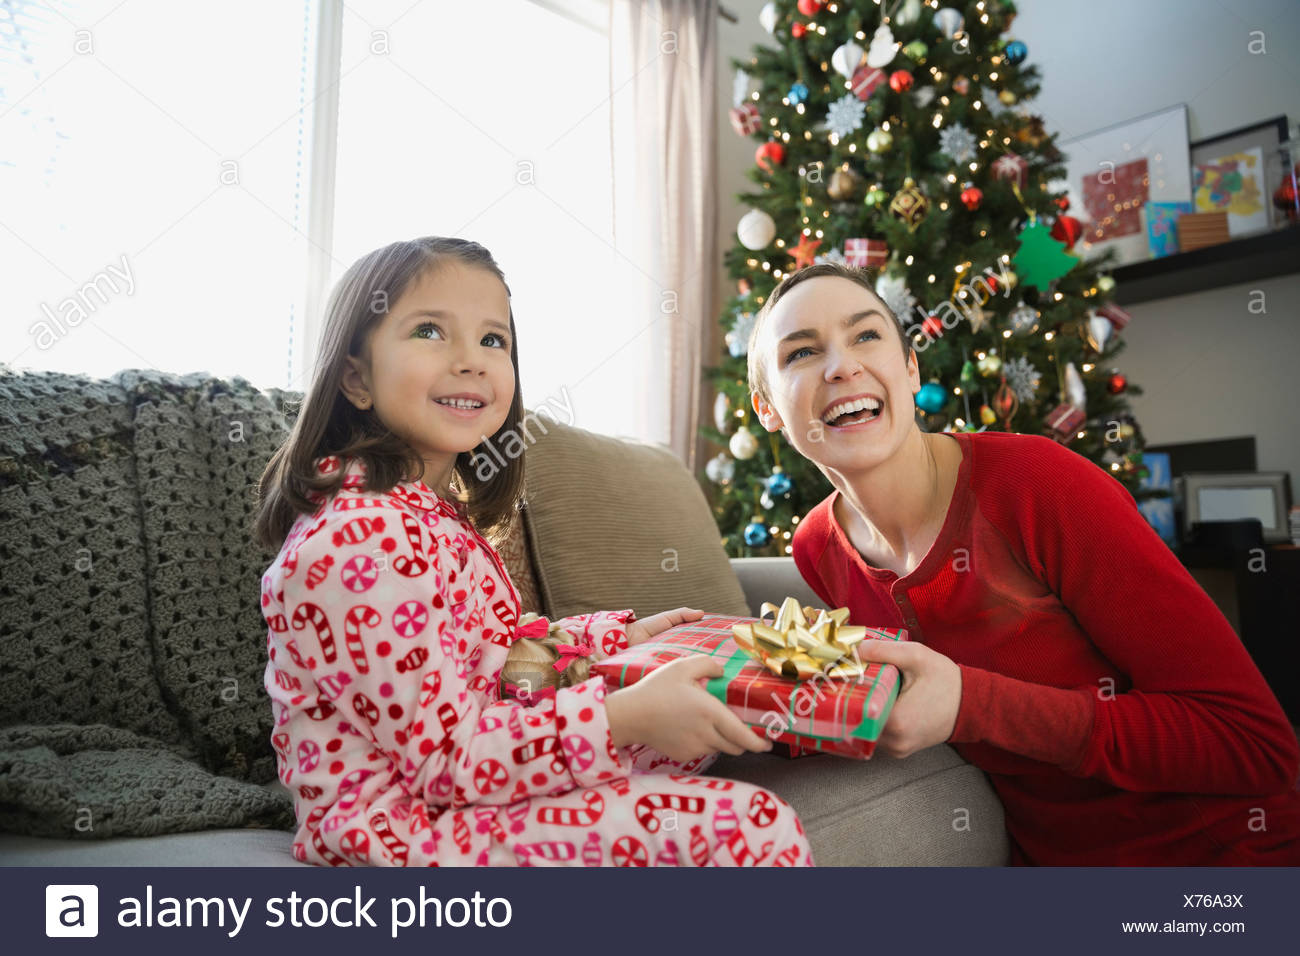 Mother and daughter exchanging Christmas gift - Stock Image